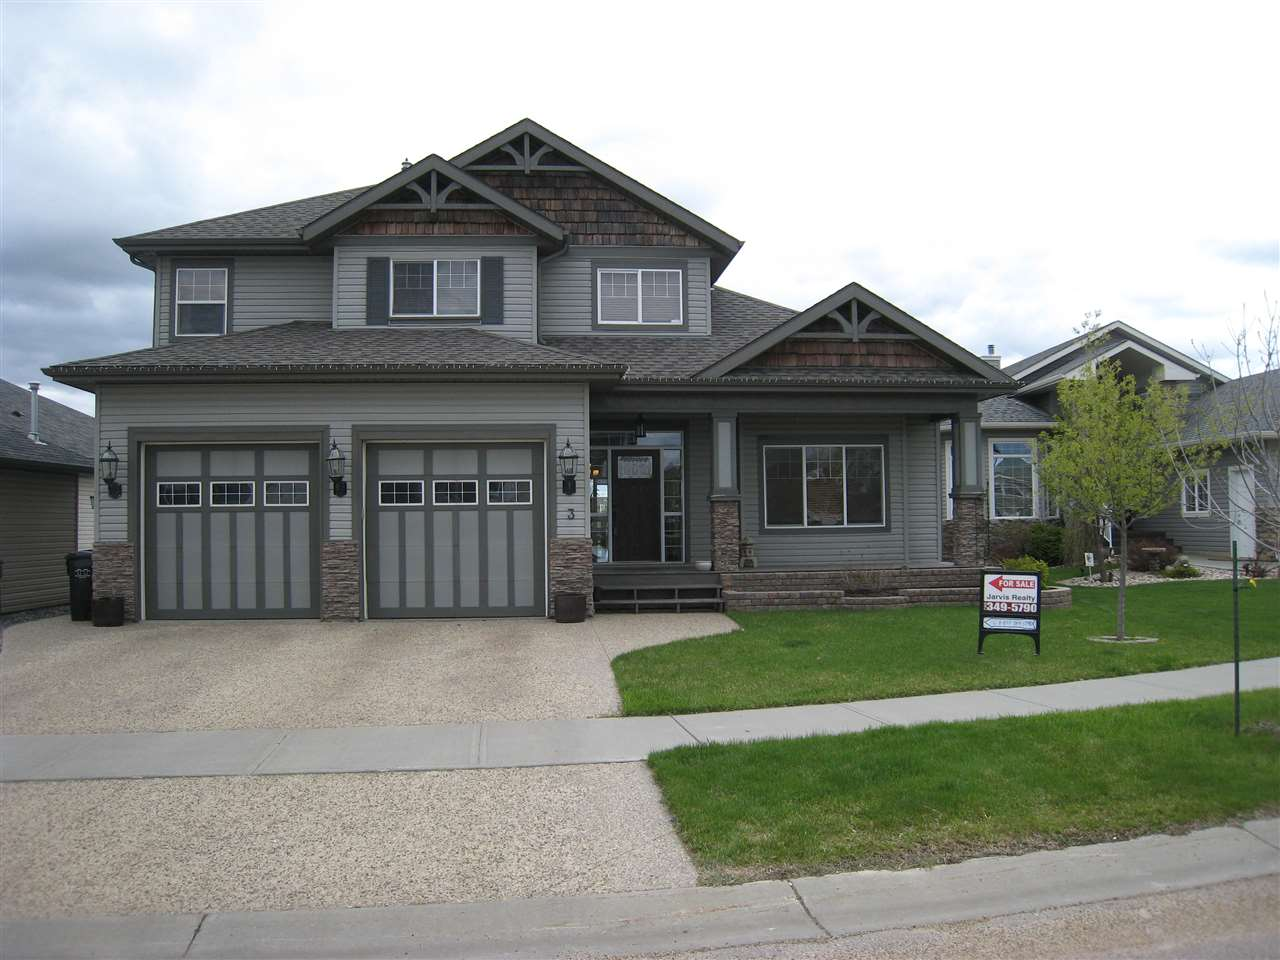 Wonderful curb appeal with this custom built home. Aggregate driveway, 2 overhead garage doors, beautiful covered front porch to sit and watch passersby and family friendly neighbourhood.